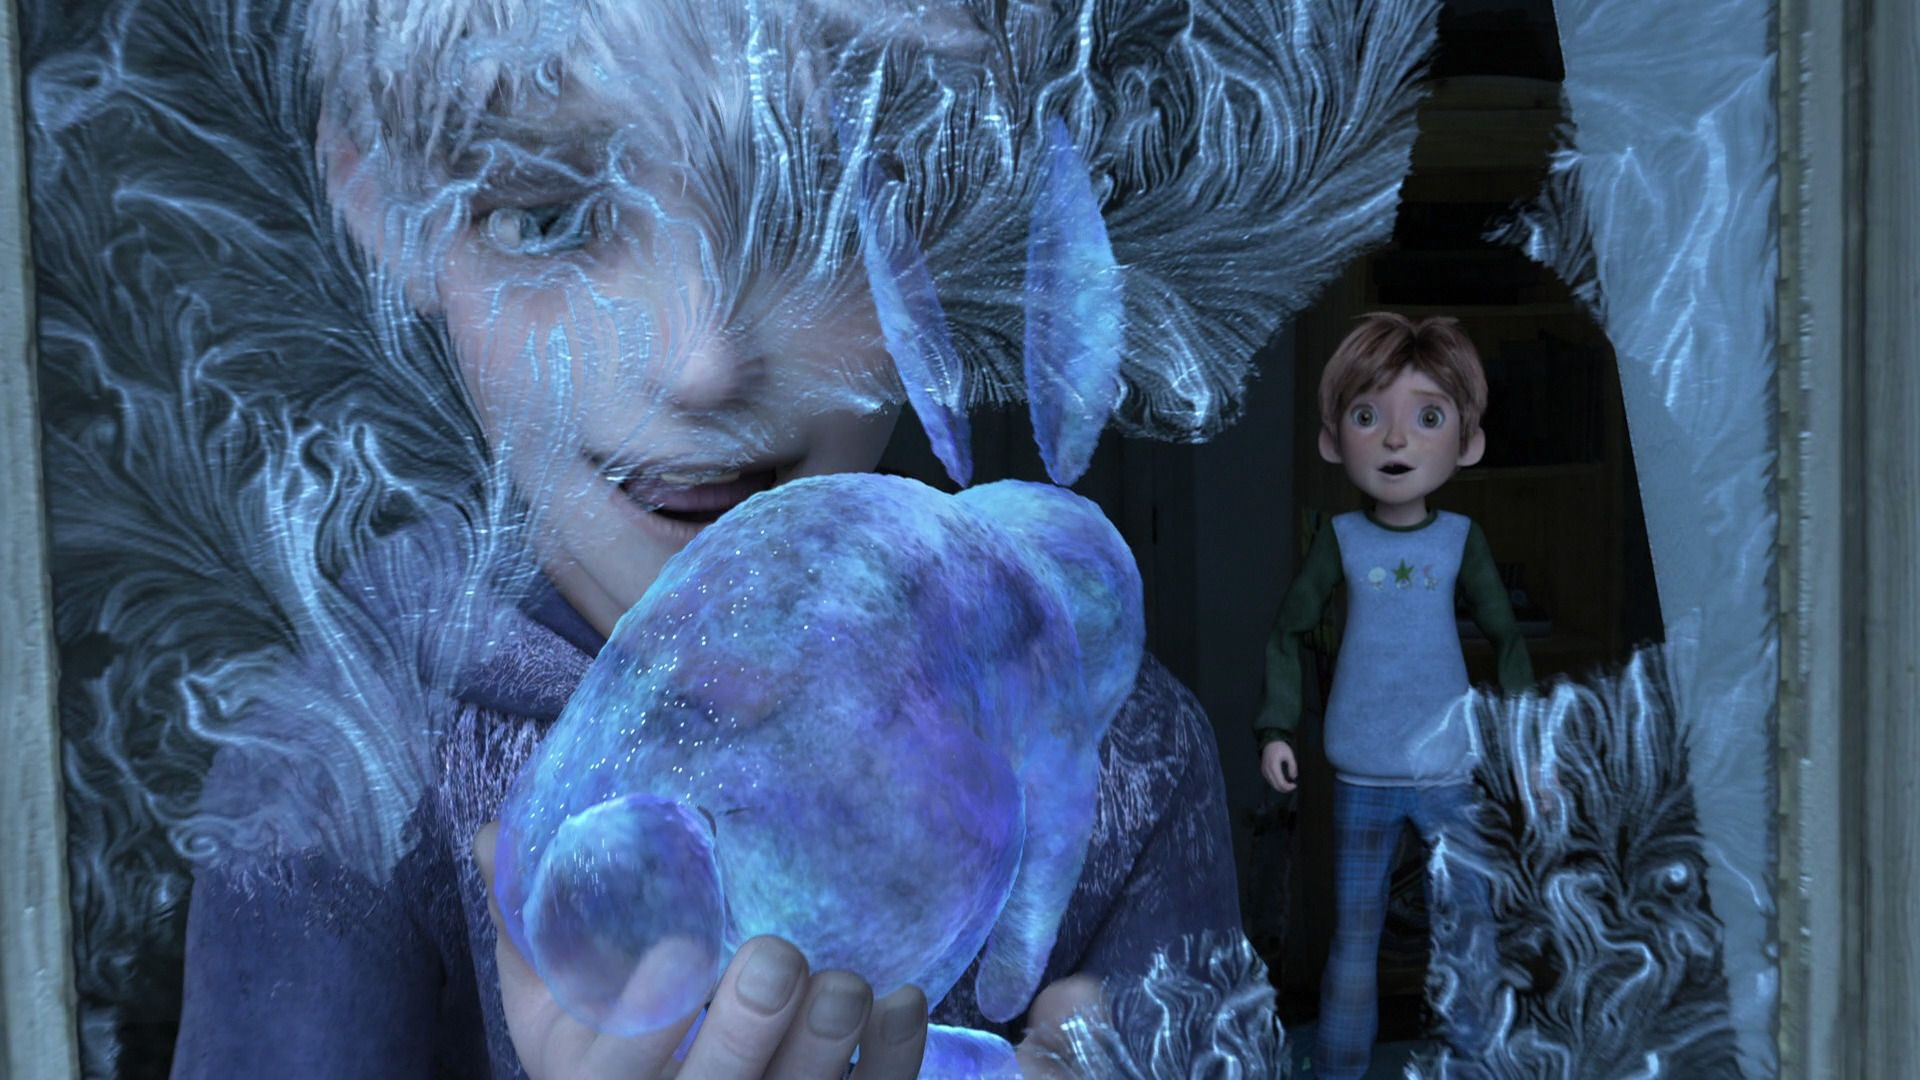 Jack frost hq rise of the guardians photo 34929505 fanpop jack frost hq rise of the guardians photo 34929505 fanpop altavistaventures Gallery